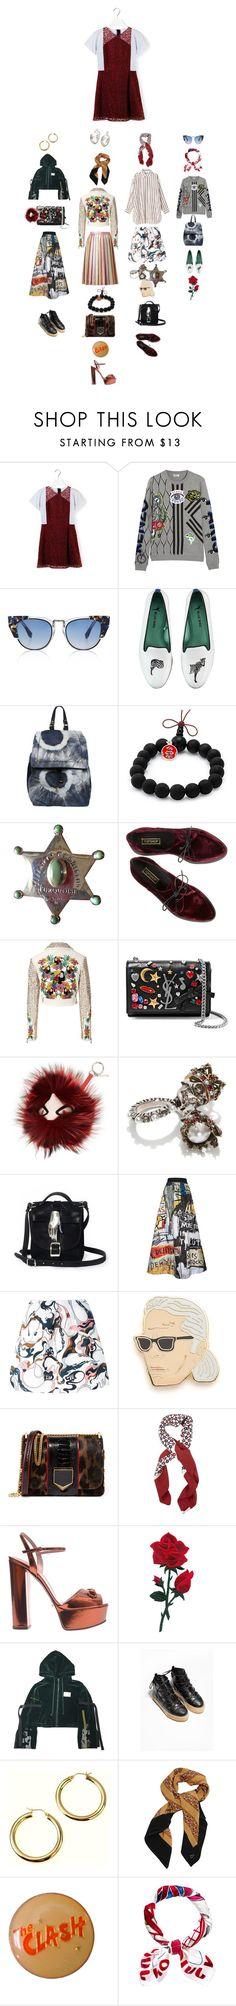 """""""Untitled #2069"""" by duumbblond ❤ liked on Polyvore featuring Carven, Kenzo, Fendi, Blue Bird, Jérôme Dreyfuss, King Ice, Tiffany & Co., Philipp Plein, Marco de Vincenzo and Yves Saint Laurent"""